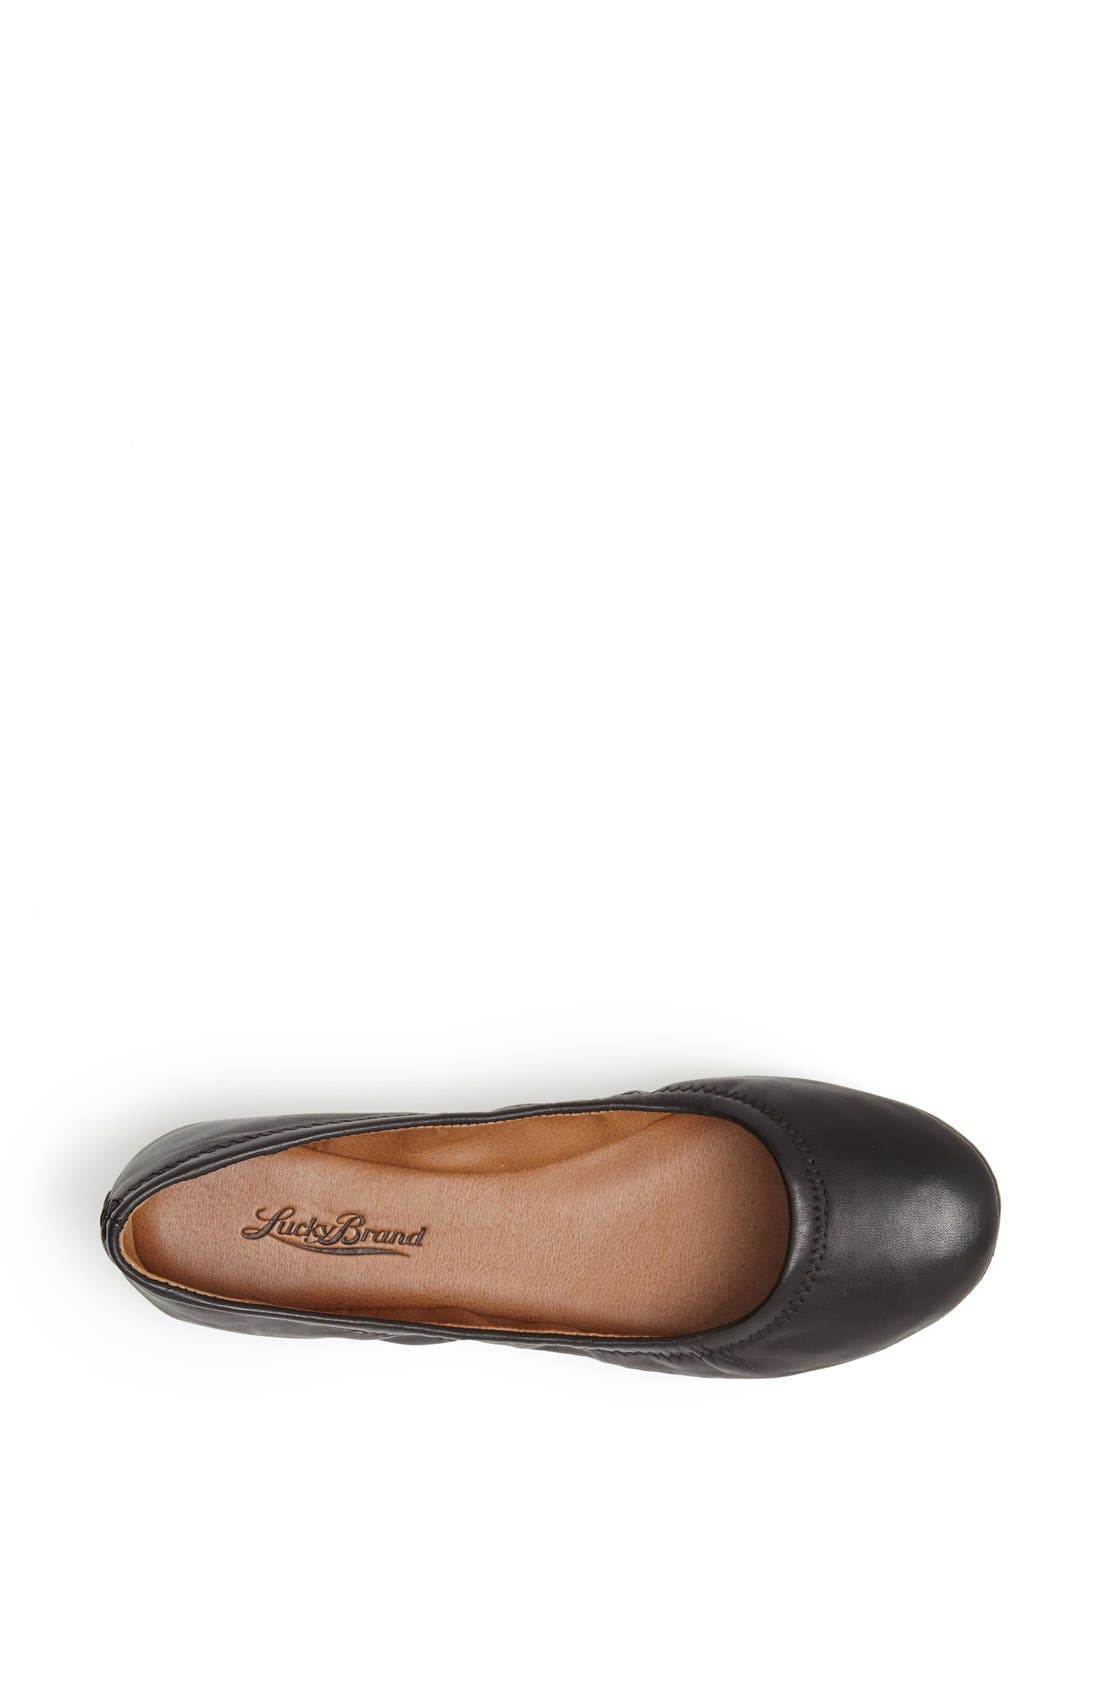 LUCKY BRAND,                             'Emmie' Flat,                             Alternate thumbnail 3, color,                             001